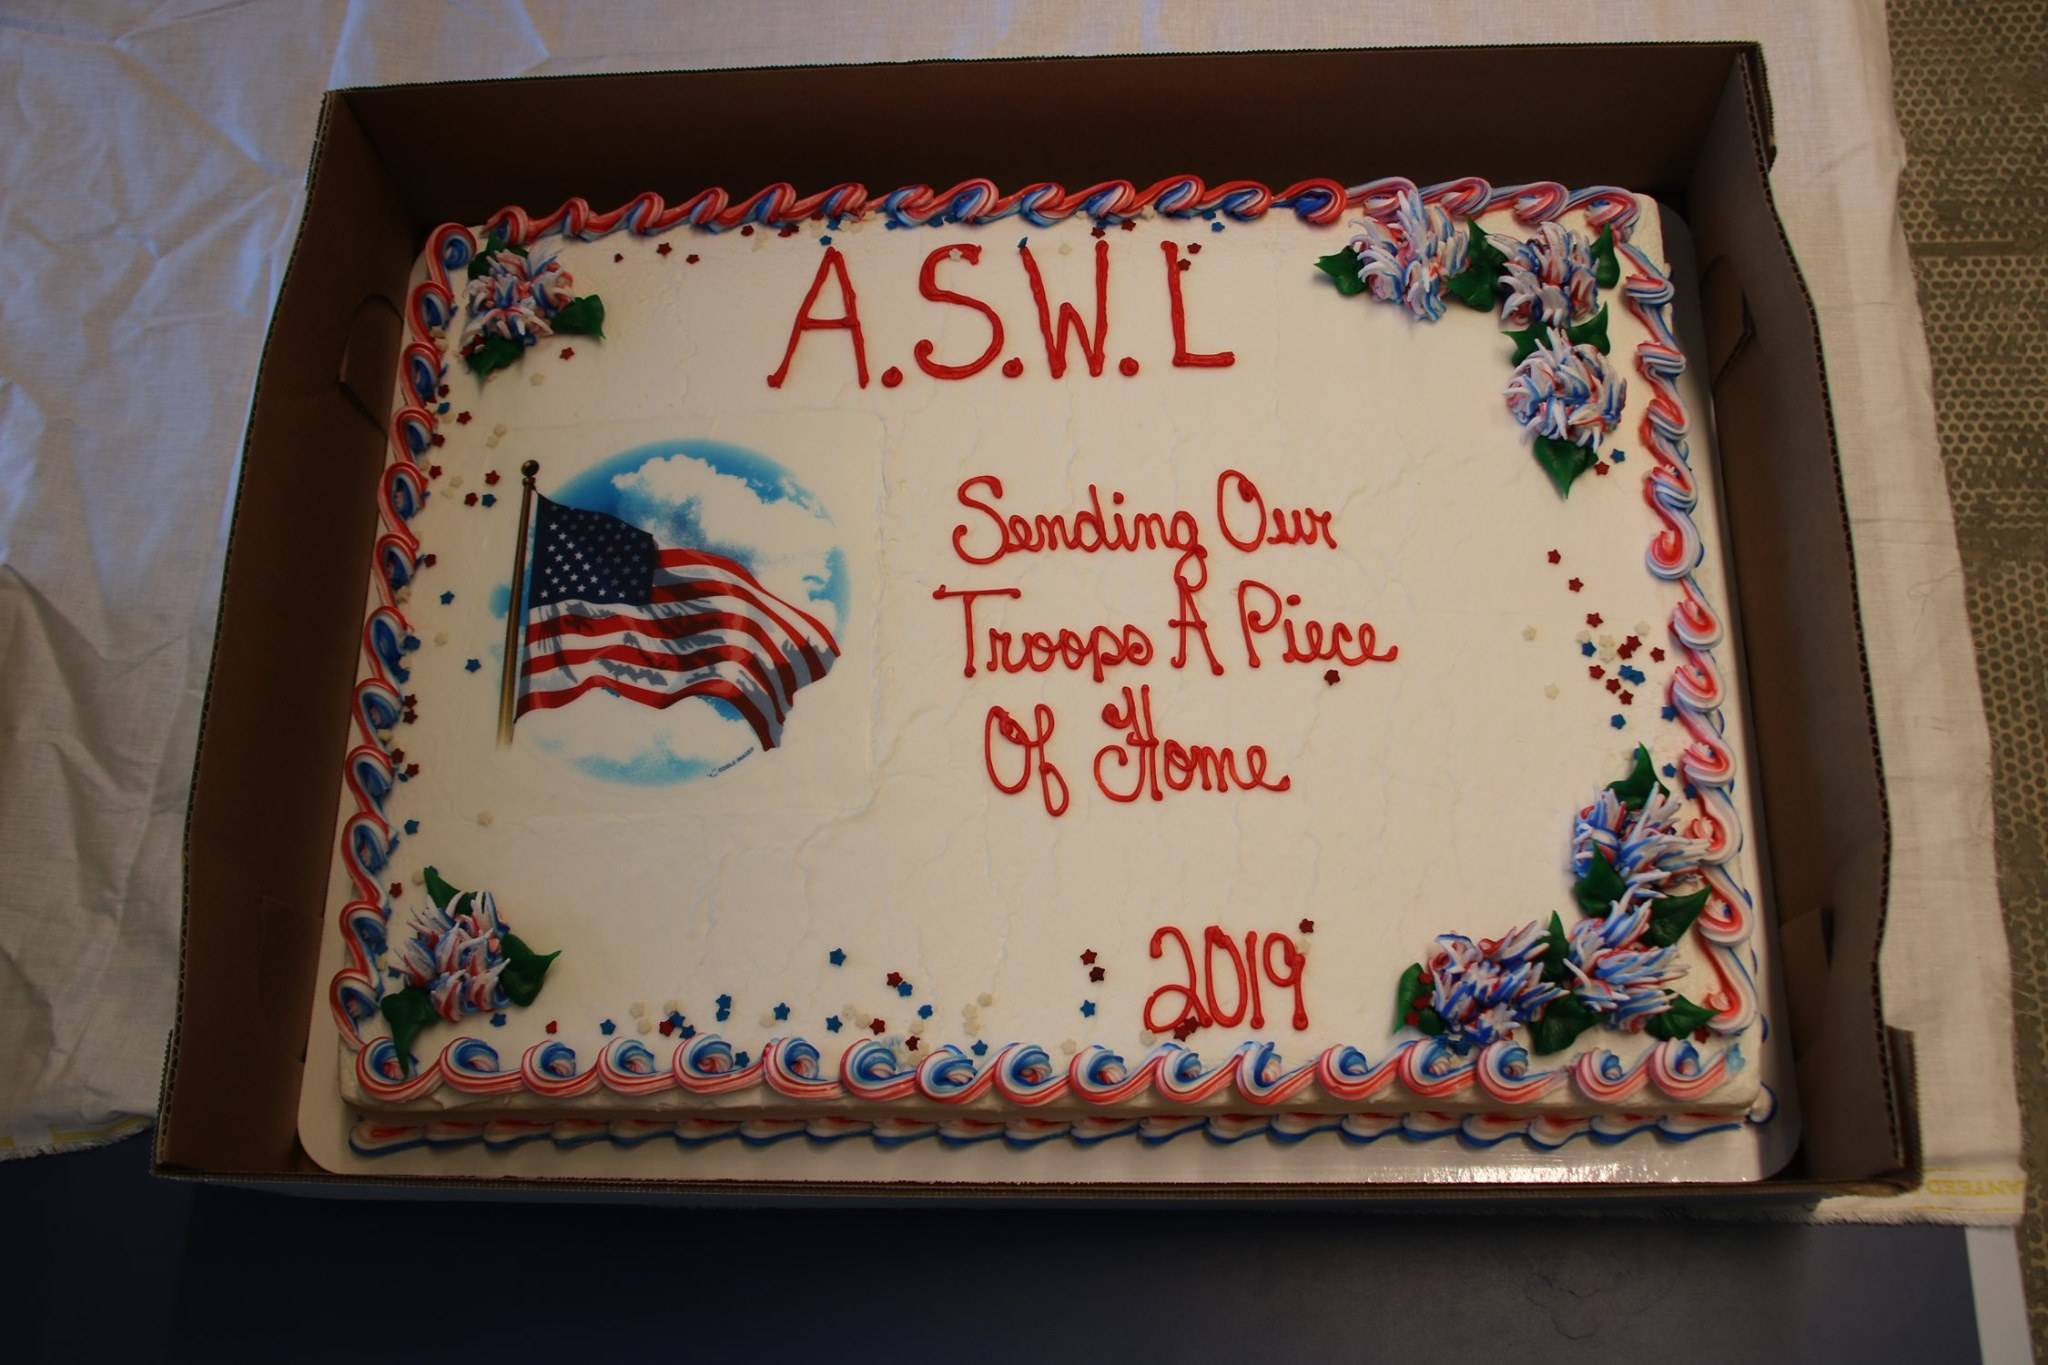 good cake to honor our troops